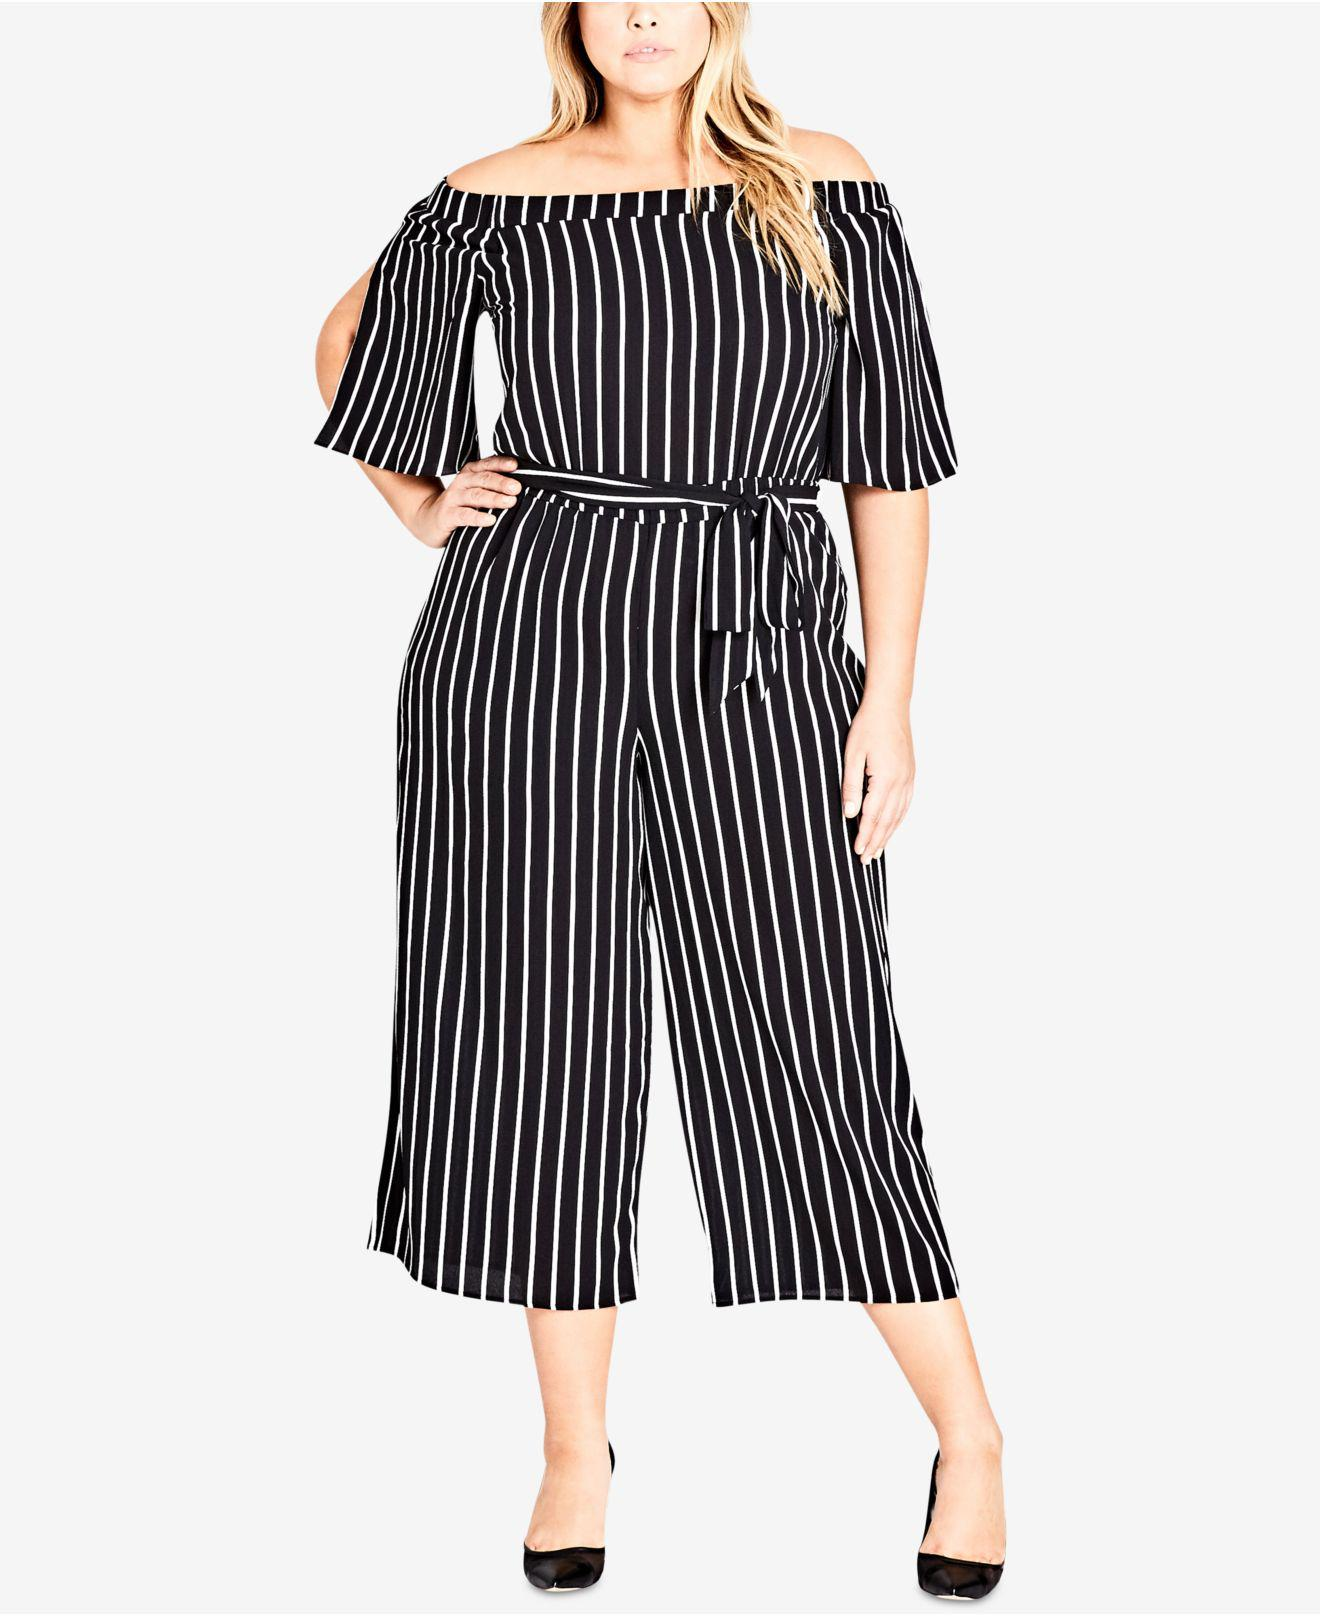 05e95c46ccf8 City Chic Stripe Play Jumpsuit in Black - Save 27% - Lyst